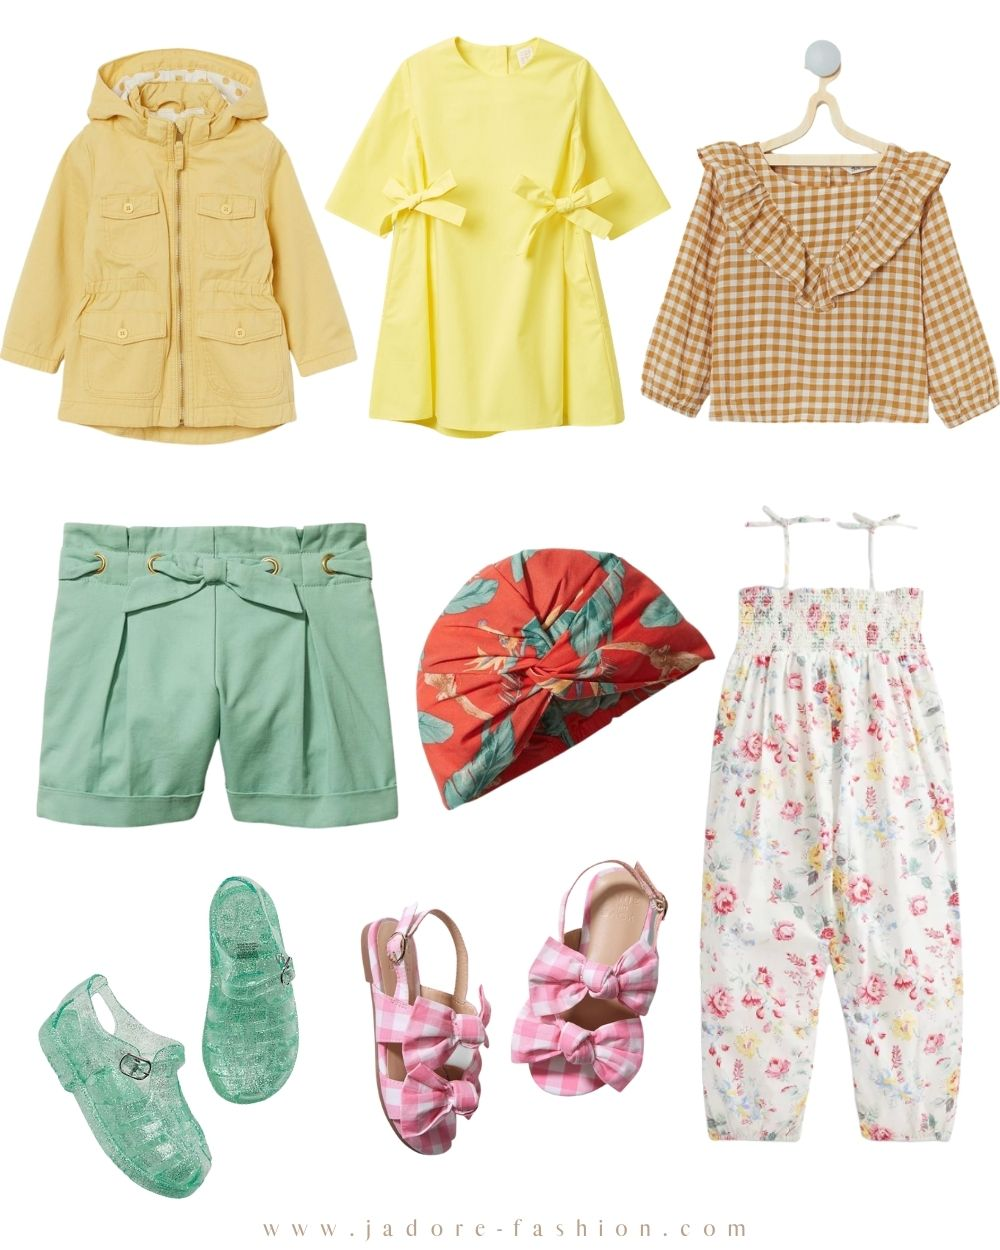 Stella-adewunmi-of-jadore-fashion-blog-share-the-best-spring-Kids-clothes